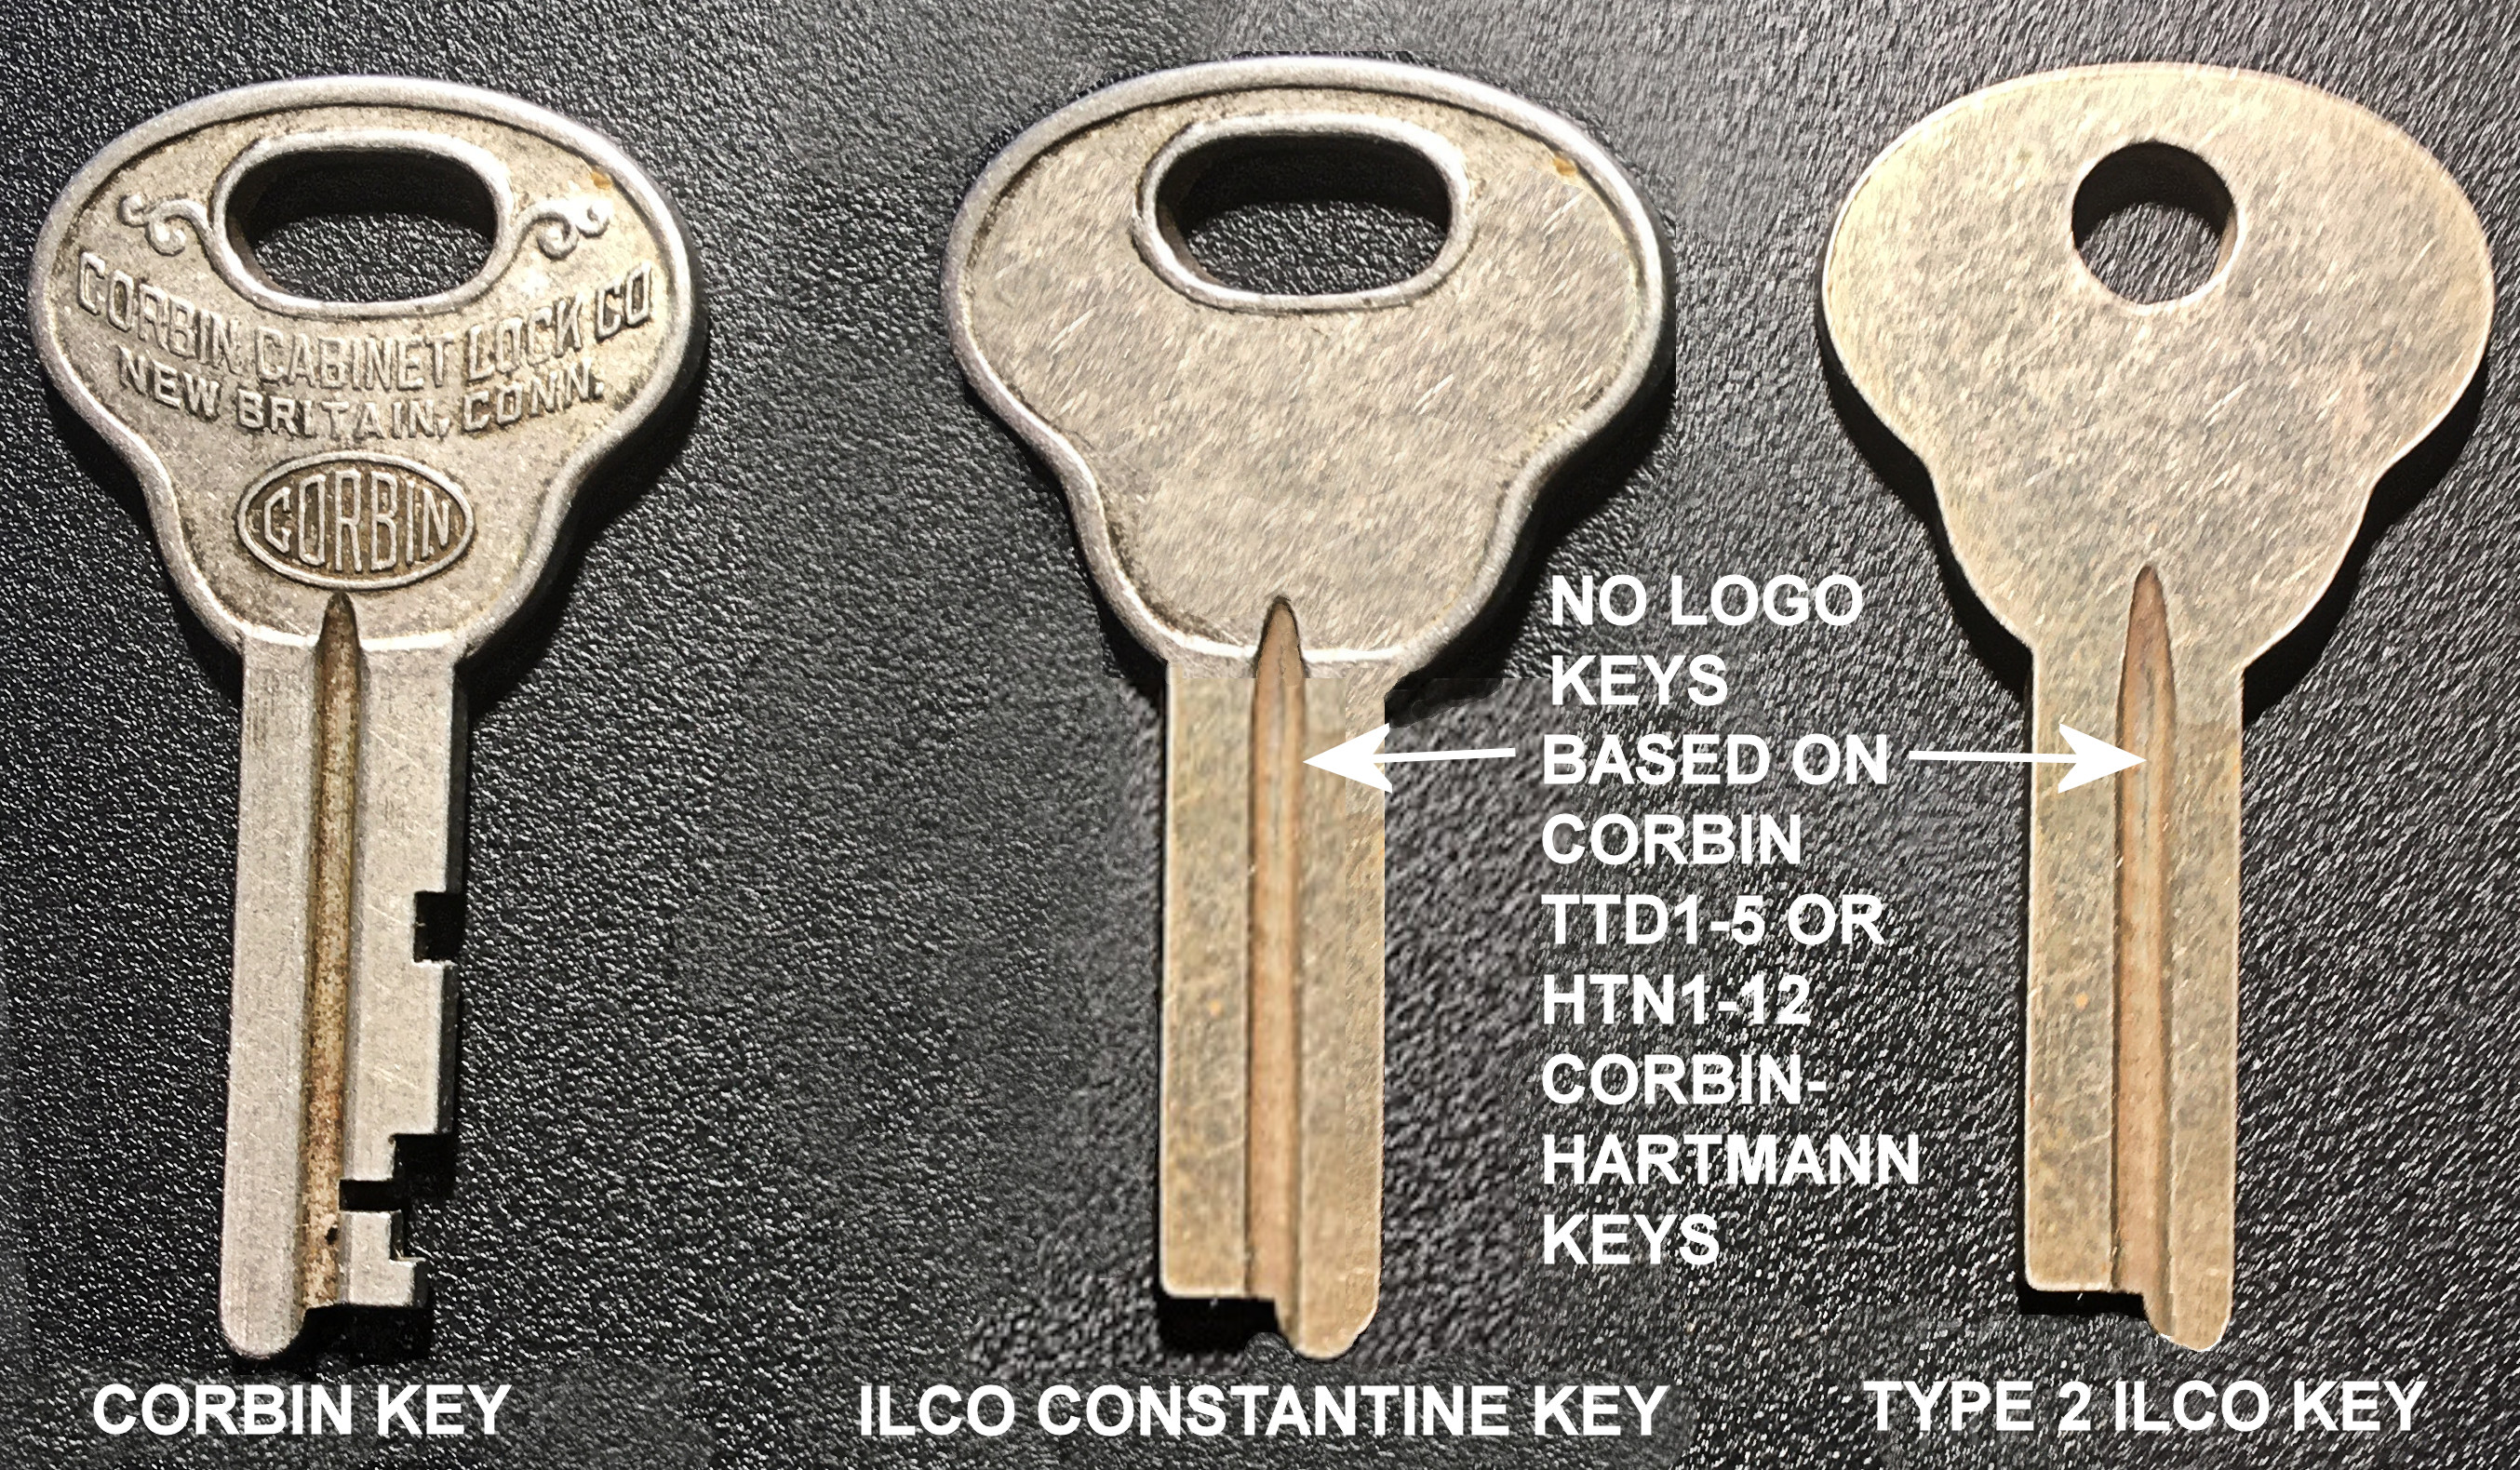 CORBIN LOGO AND TWO ILCO NO LOGO BLANK KEYS- ONE WITH OVAL AND RIDGE- OTHER WITHOUT OVAL AND R...jpg